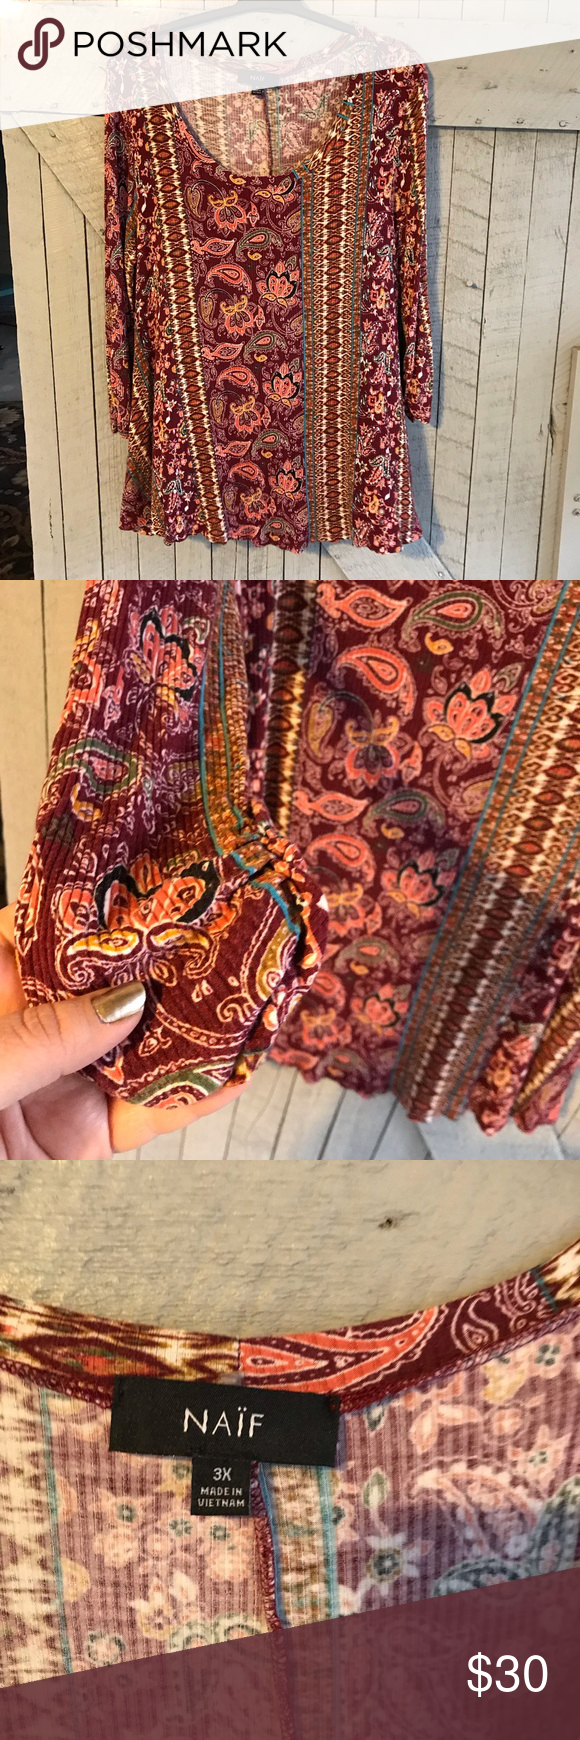 Naïf Paisley Print Top This shirt is in great used condition and will look great on you year round! You can dress it up or down, it is perfect for a …